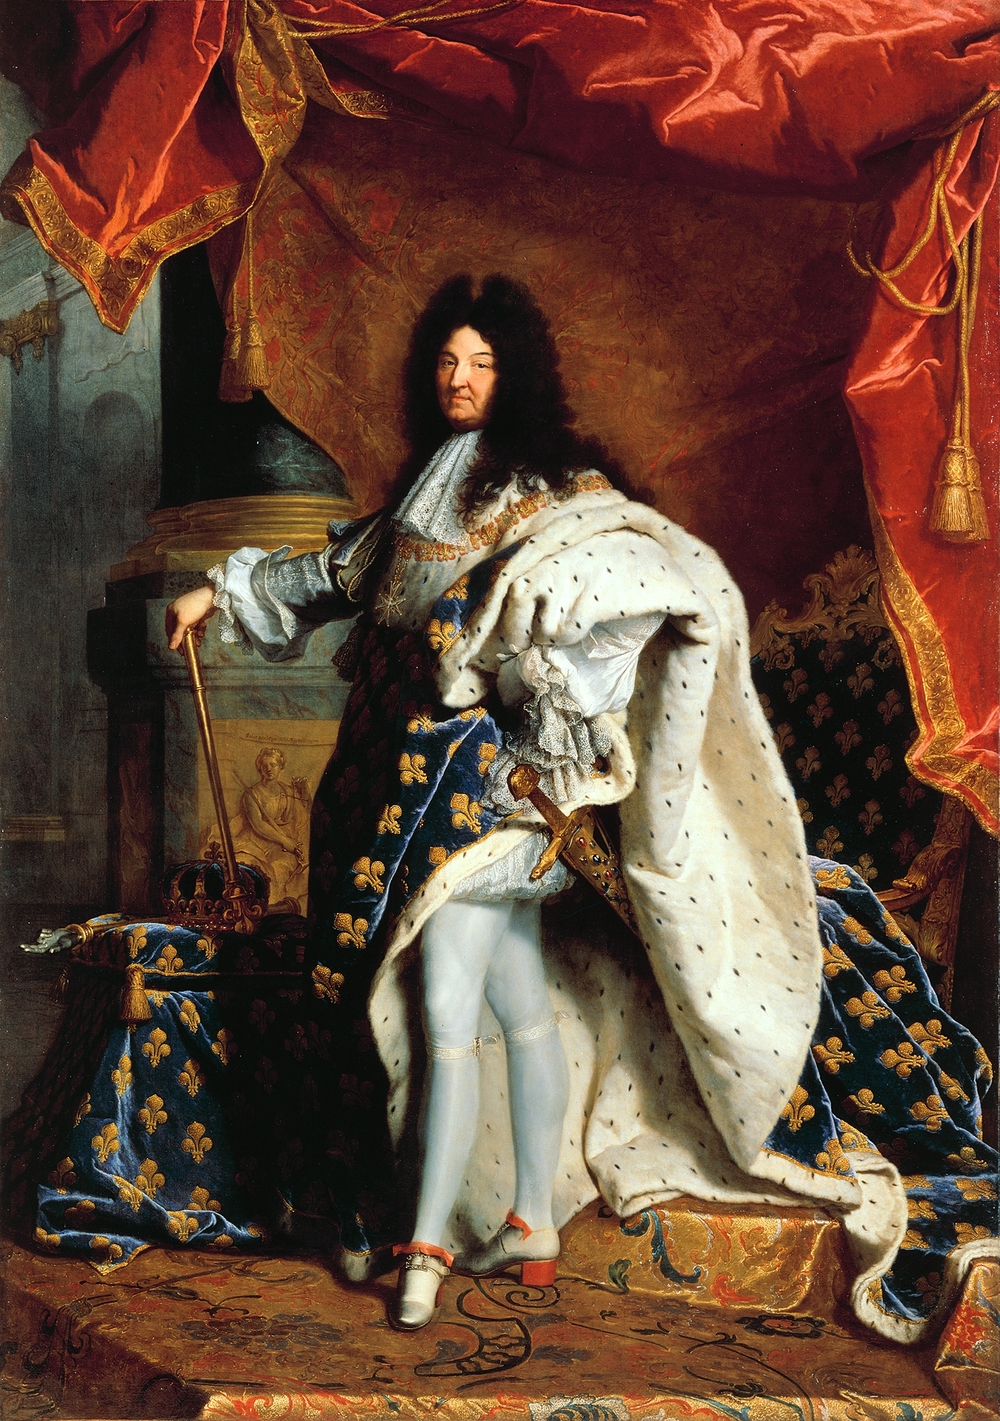 Louis XIV in his signature huge wig and tiny pants.